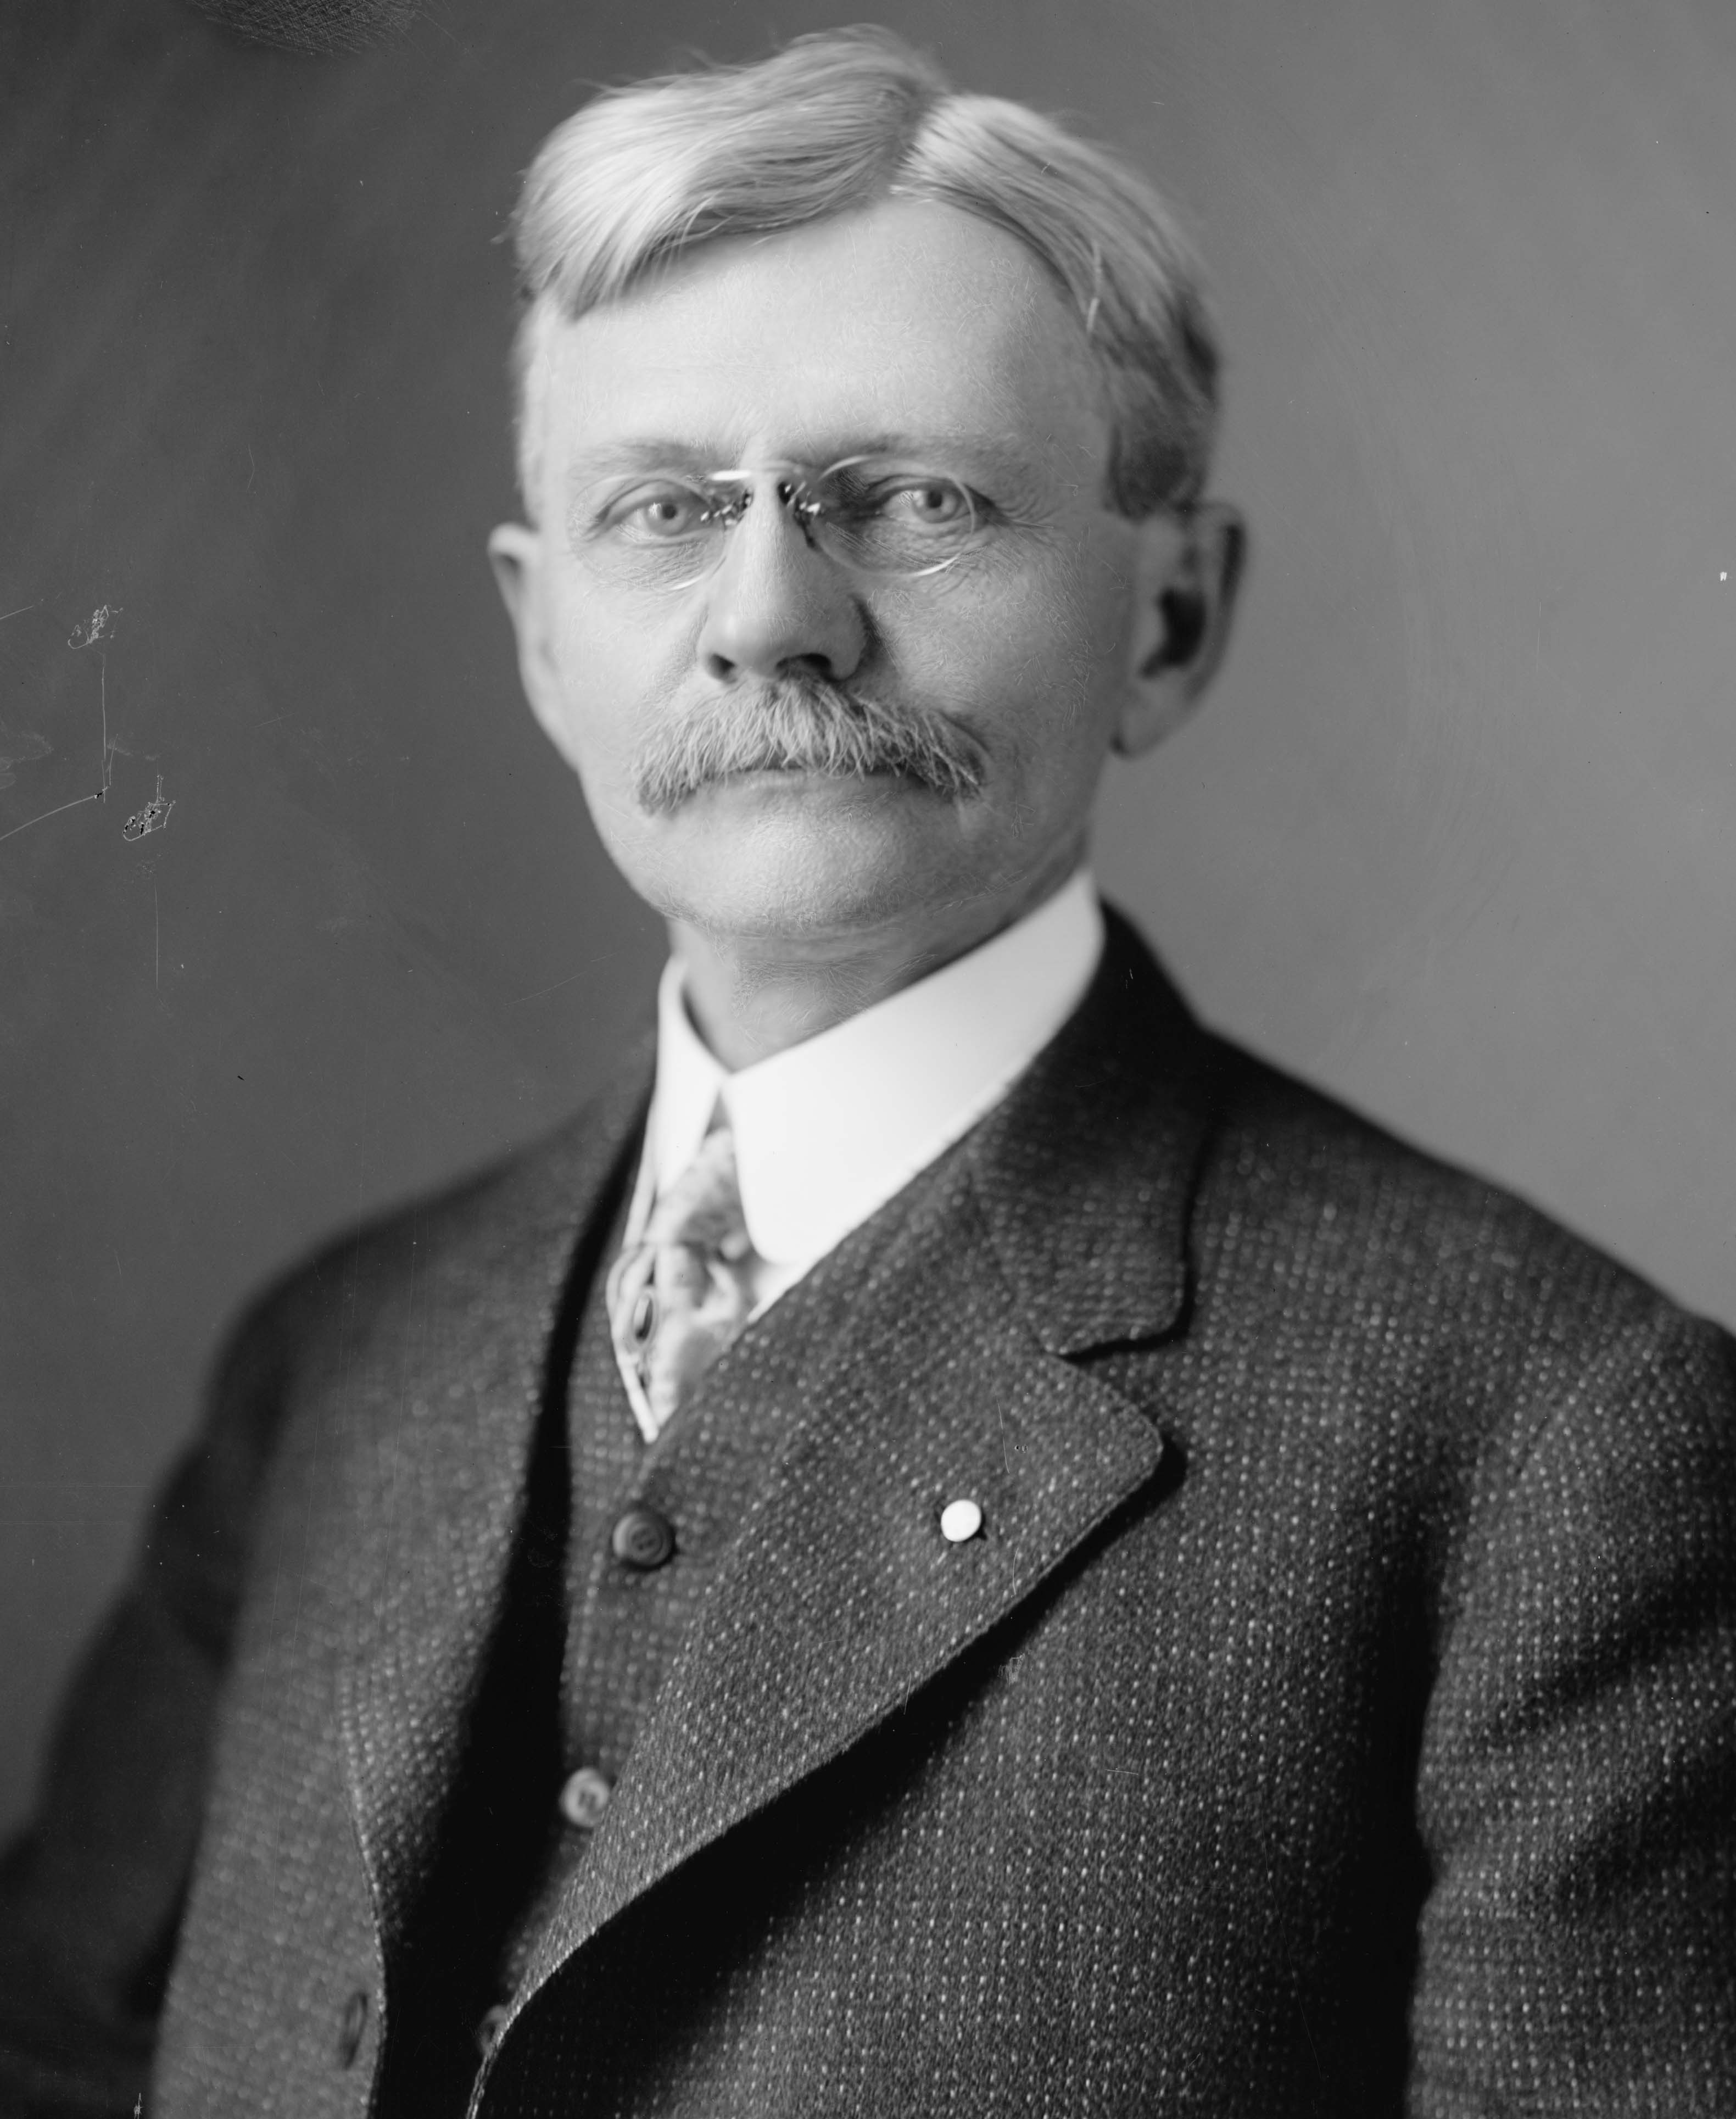 a biography of thomas riley marshall the 28th vice president of the united states Projects » united states presidents and vice presidents » profiles thomas riley marshall who served as the 28th vice president of the united states.